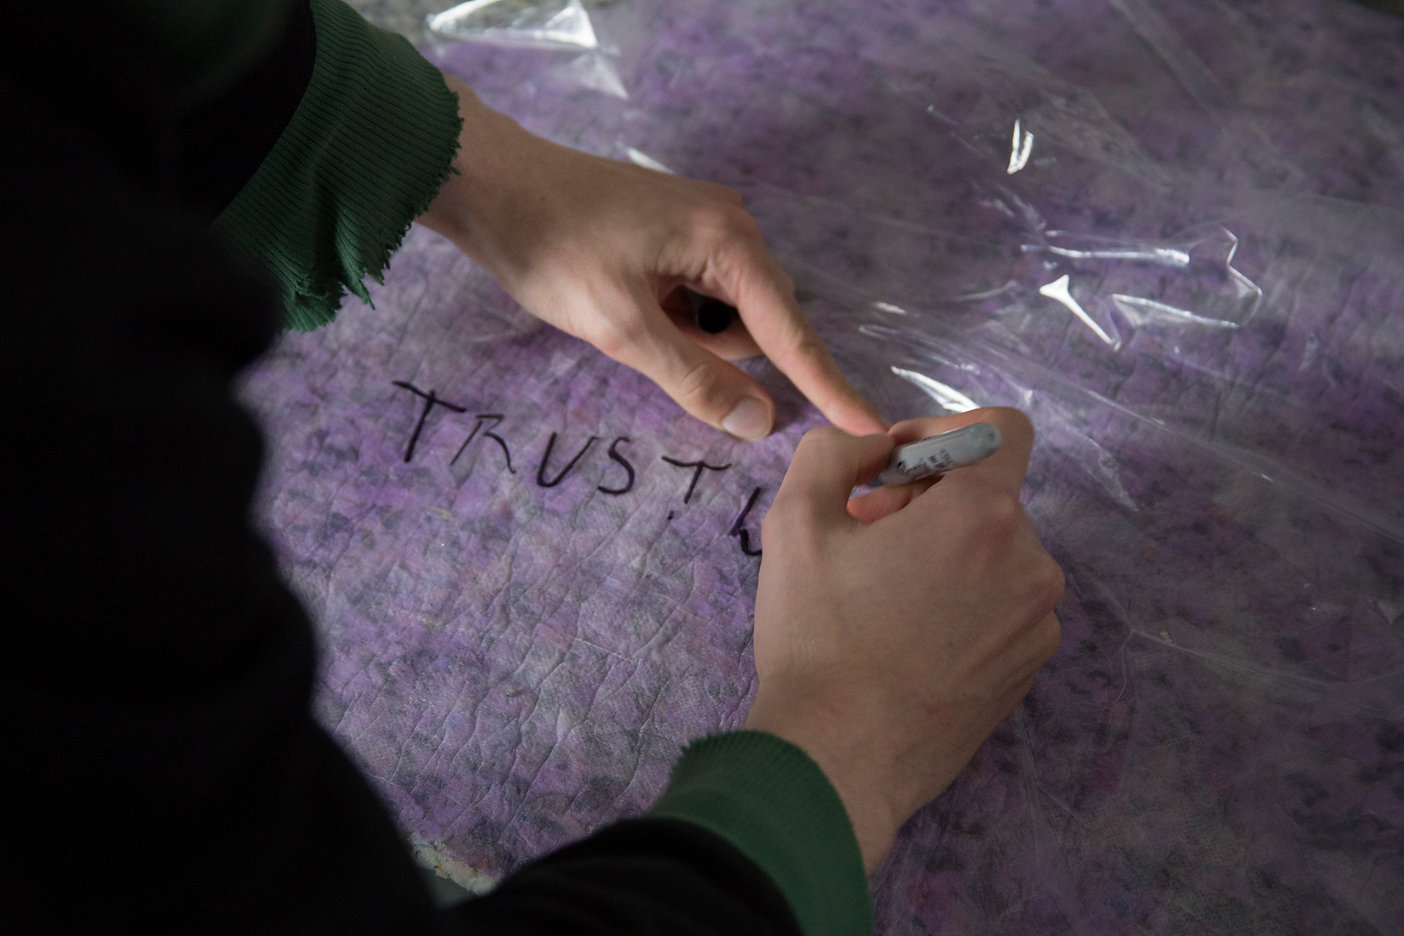 Image Description: Someone writes 'TRUST' in black sharpie on a large sheet of plastic.